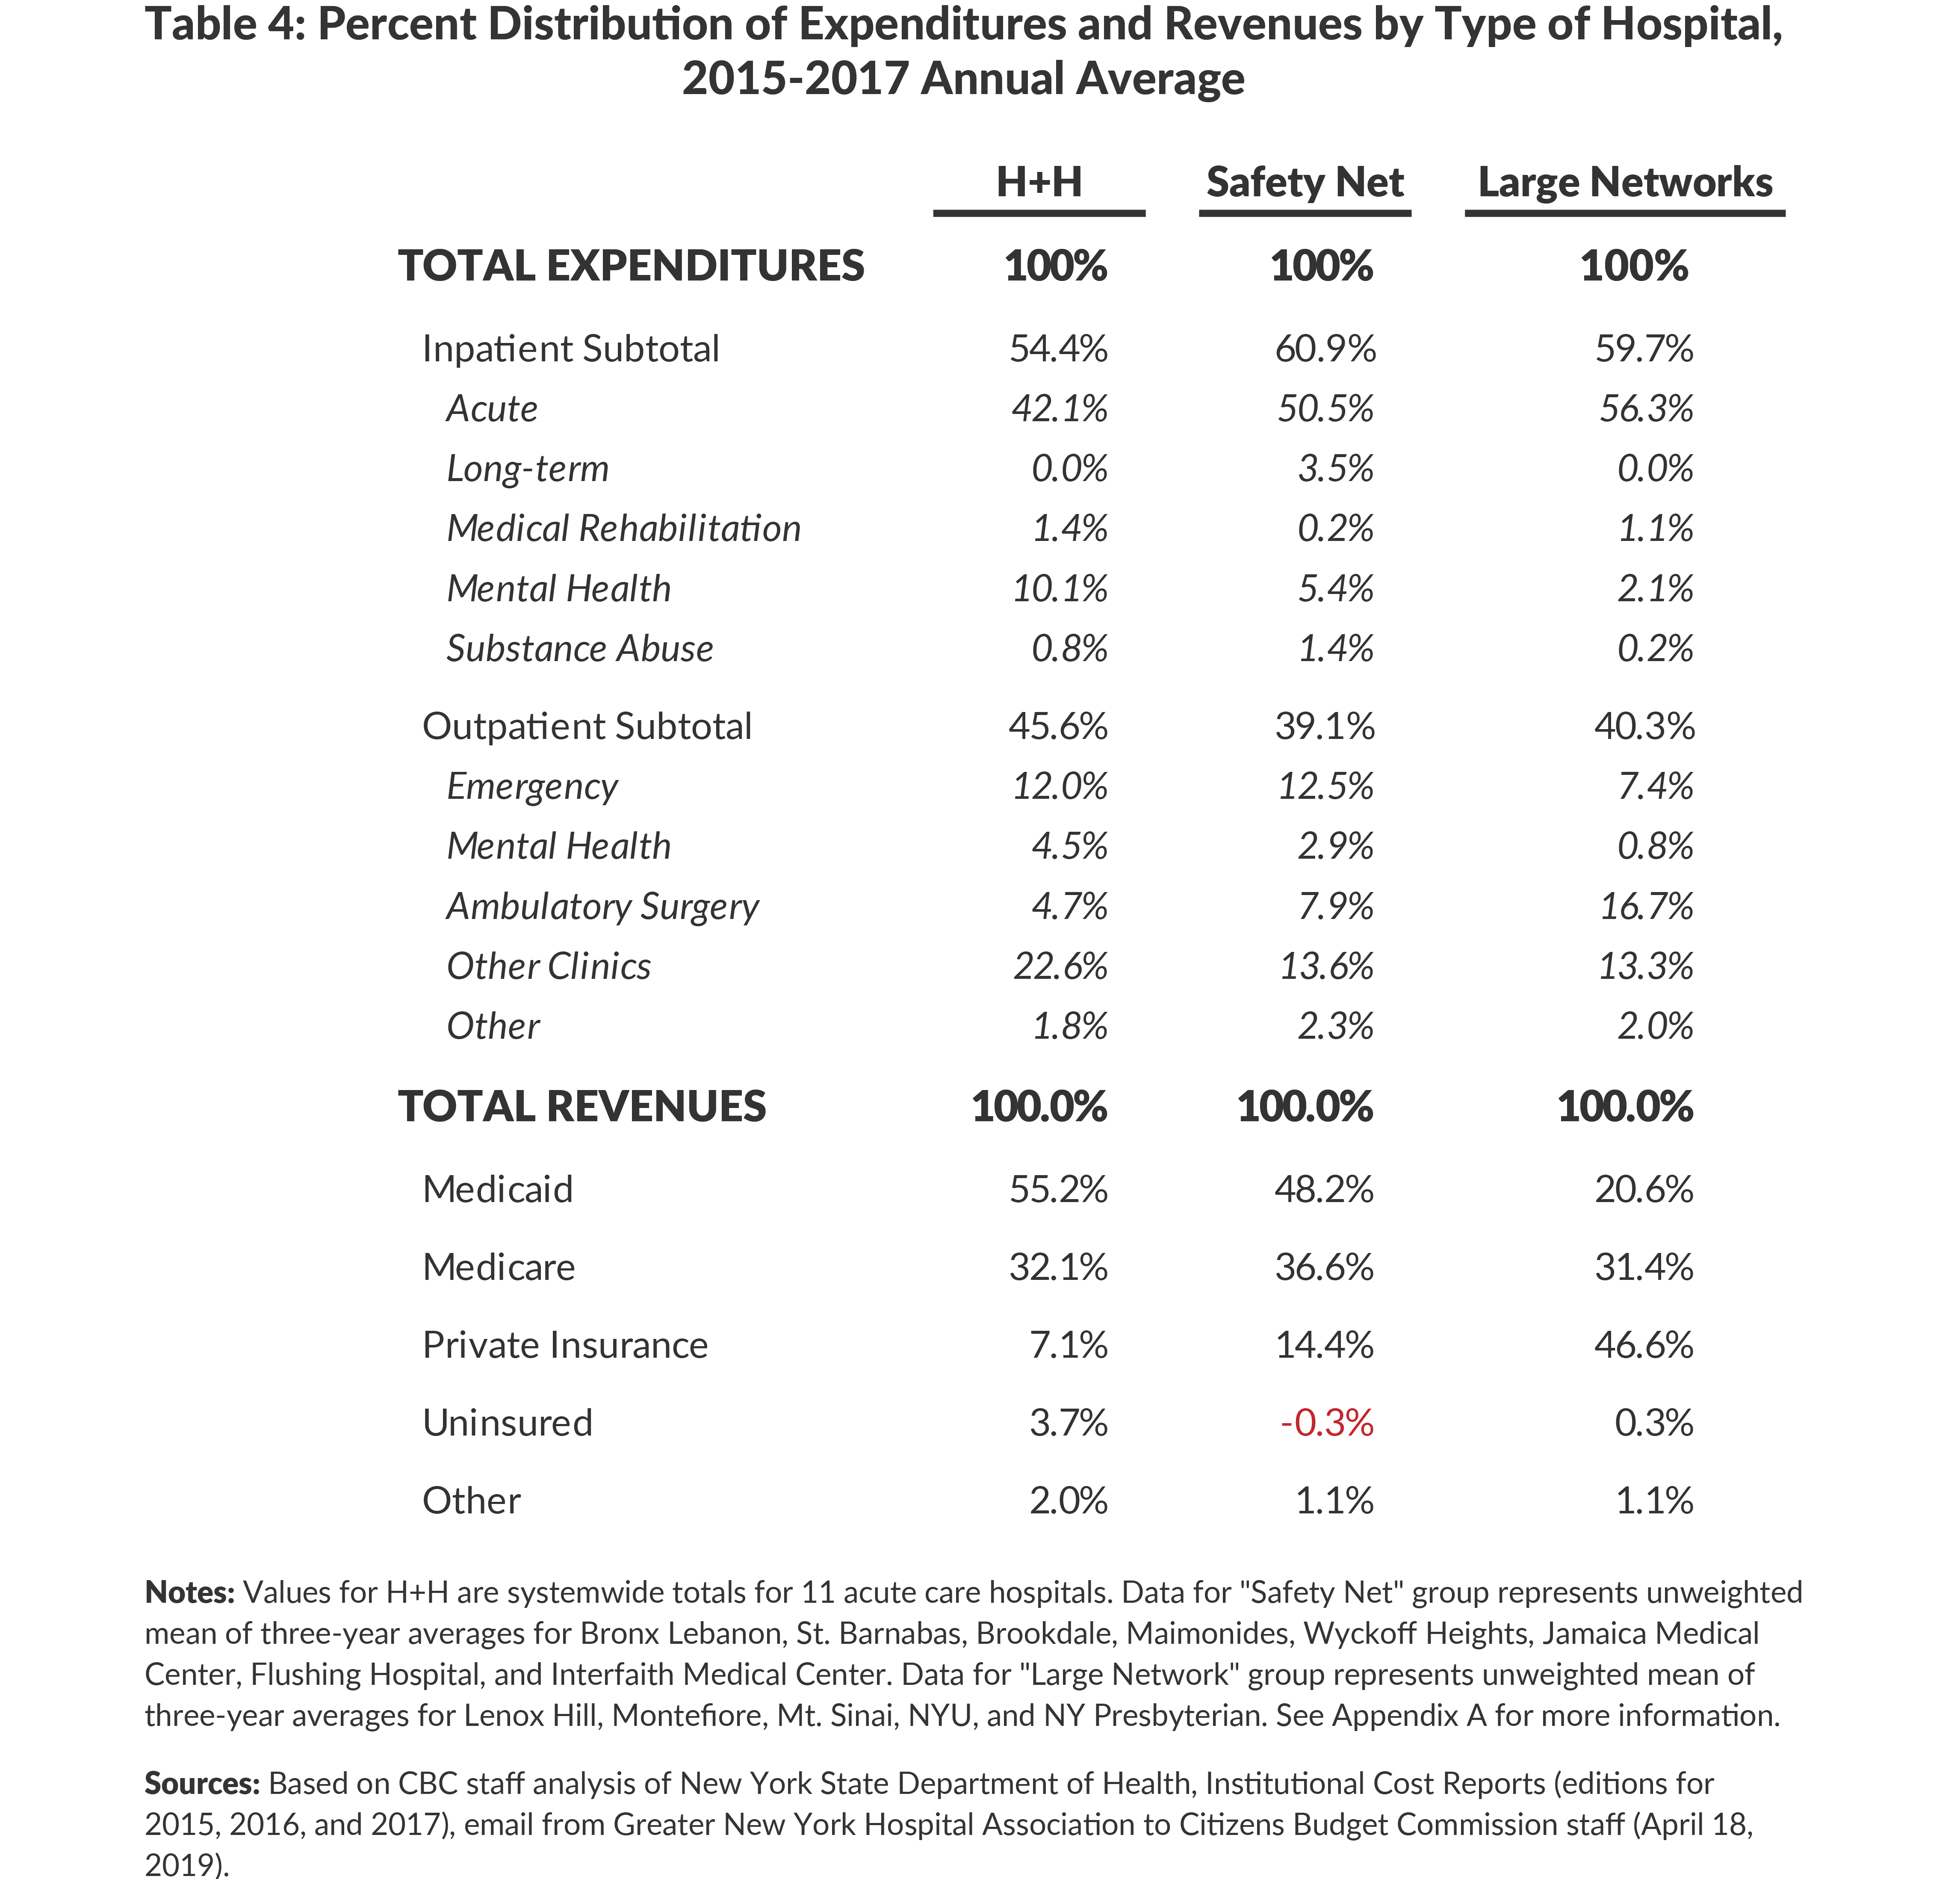 Table 4: Percent Distribution of Patient Services Expenses and Revenues by Type of Hospital, 2015-2017 Annual Average